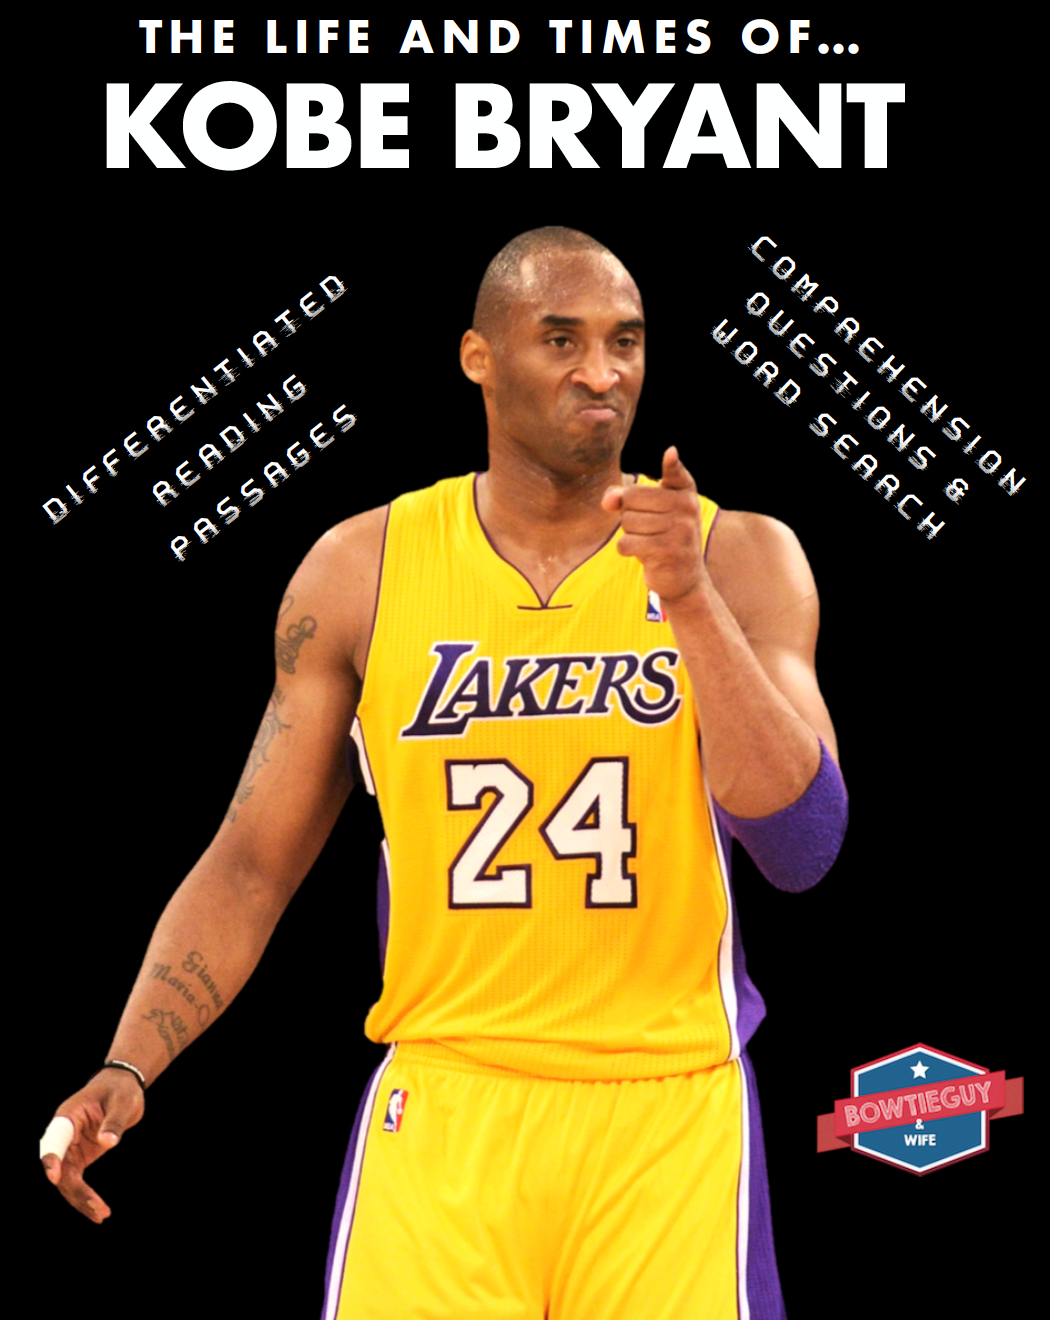 Kobe Bryant FREE differentiated passage